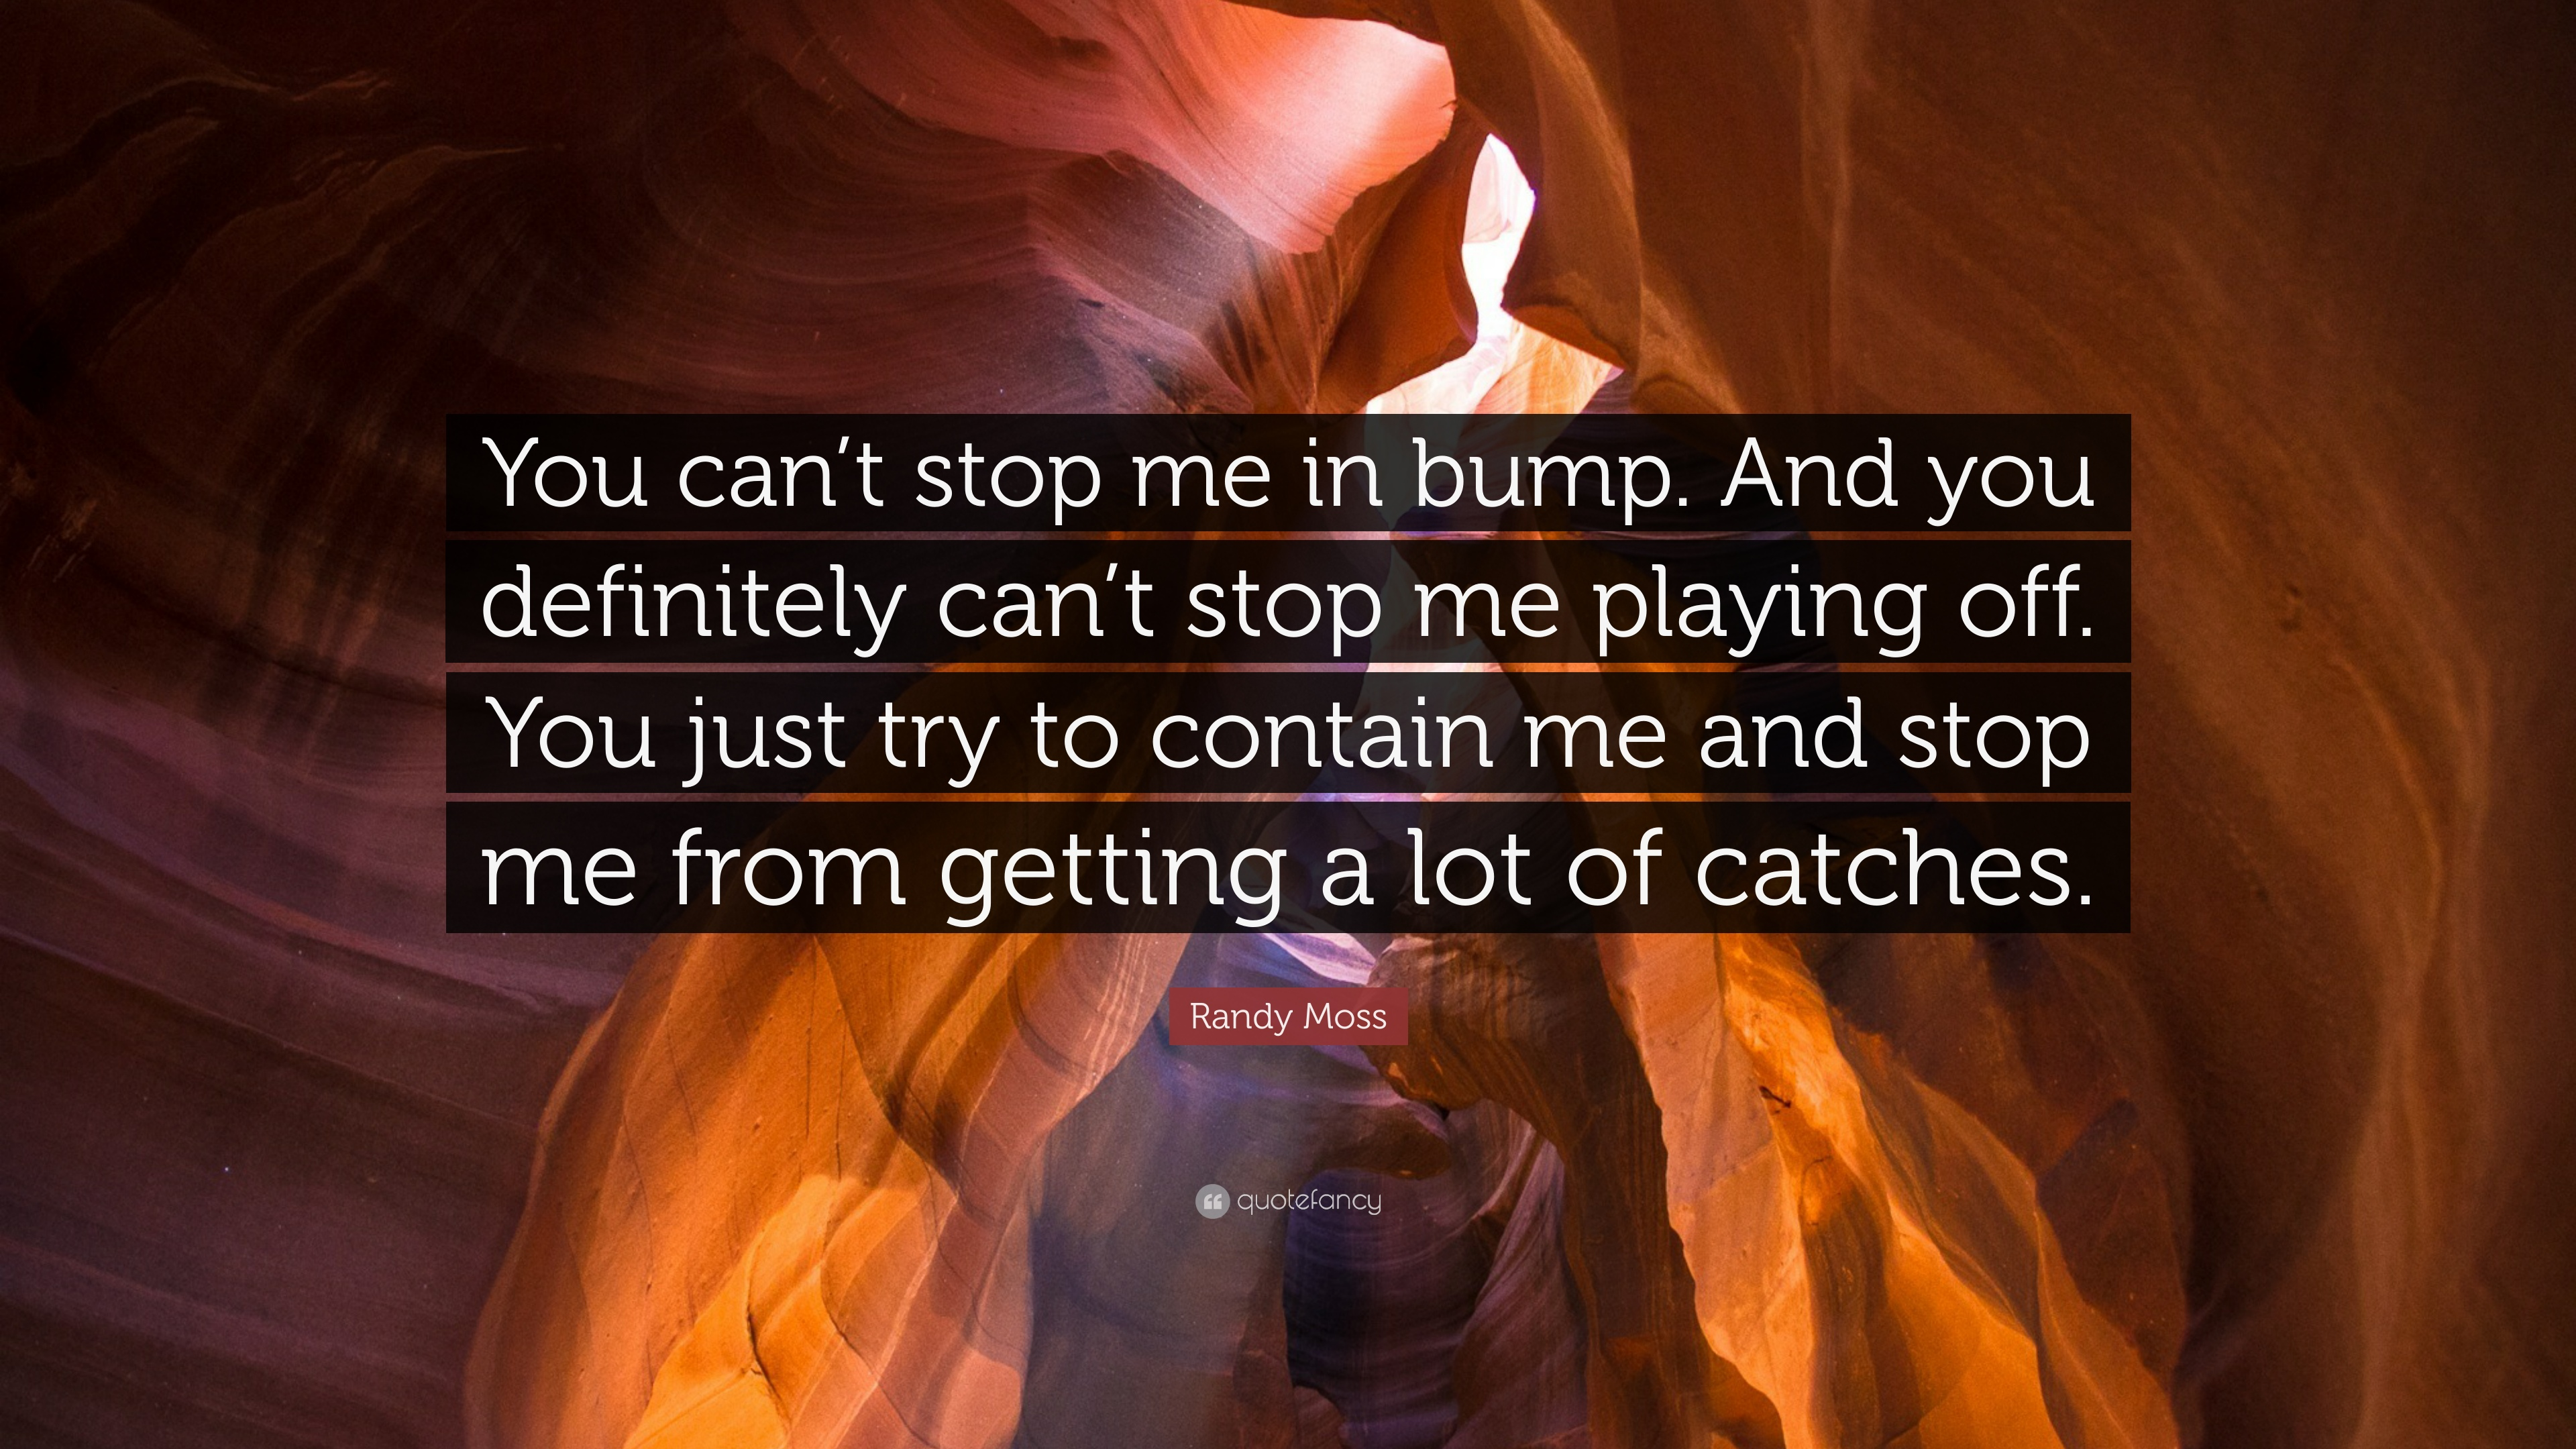 Randy Moss Quote You Cant Stop Me In Bump And You Definitely Can